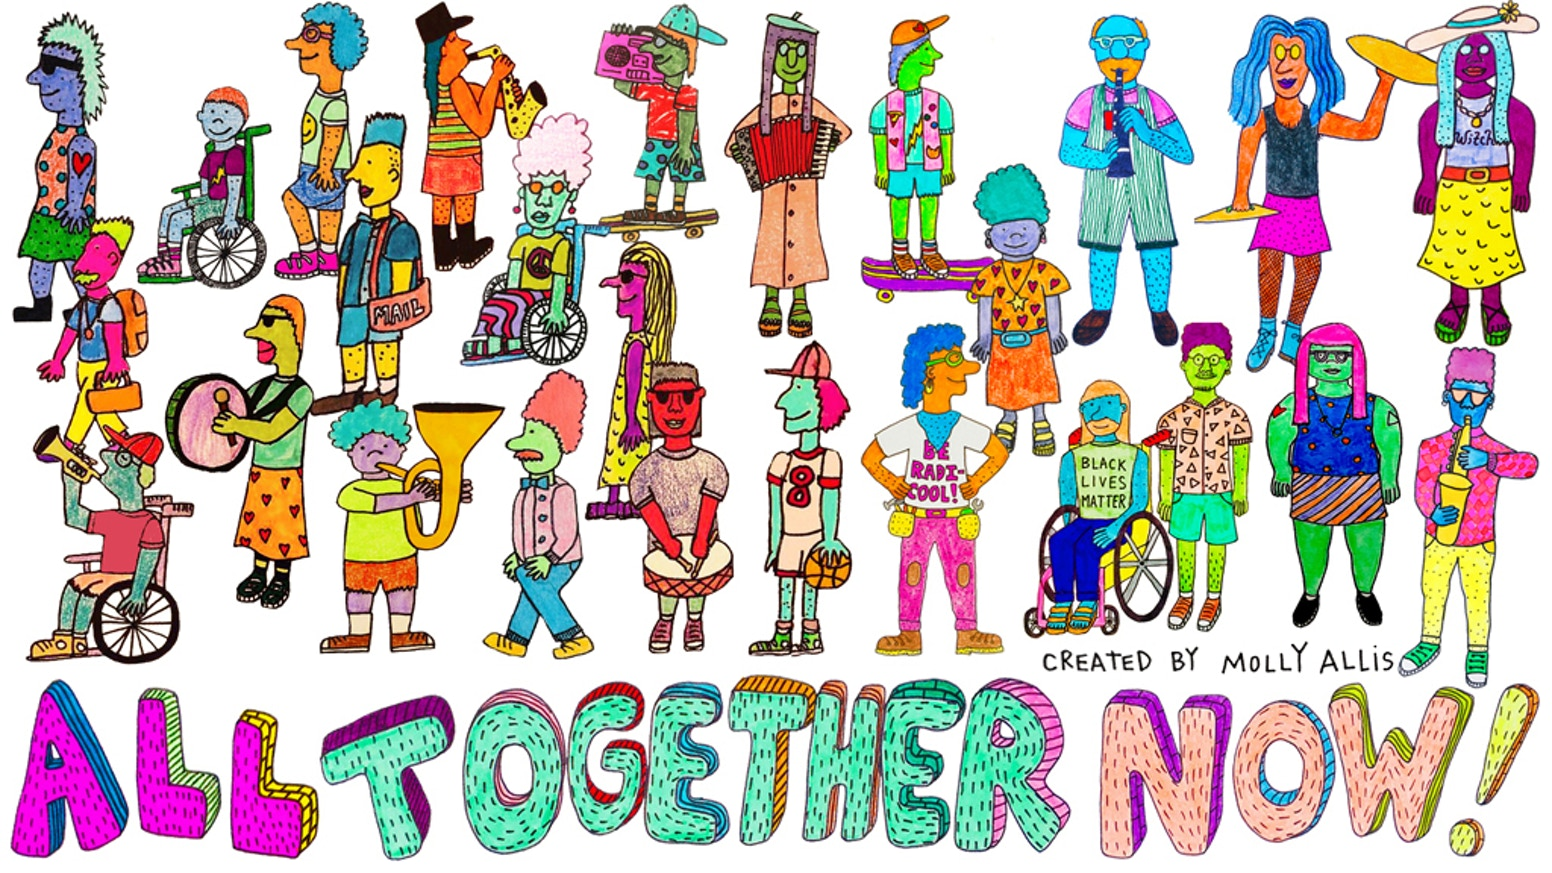 All Together Now! by Molly Allis — Kickstarter.